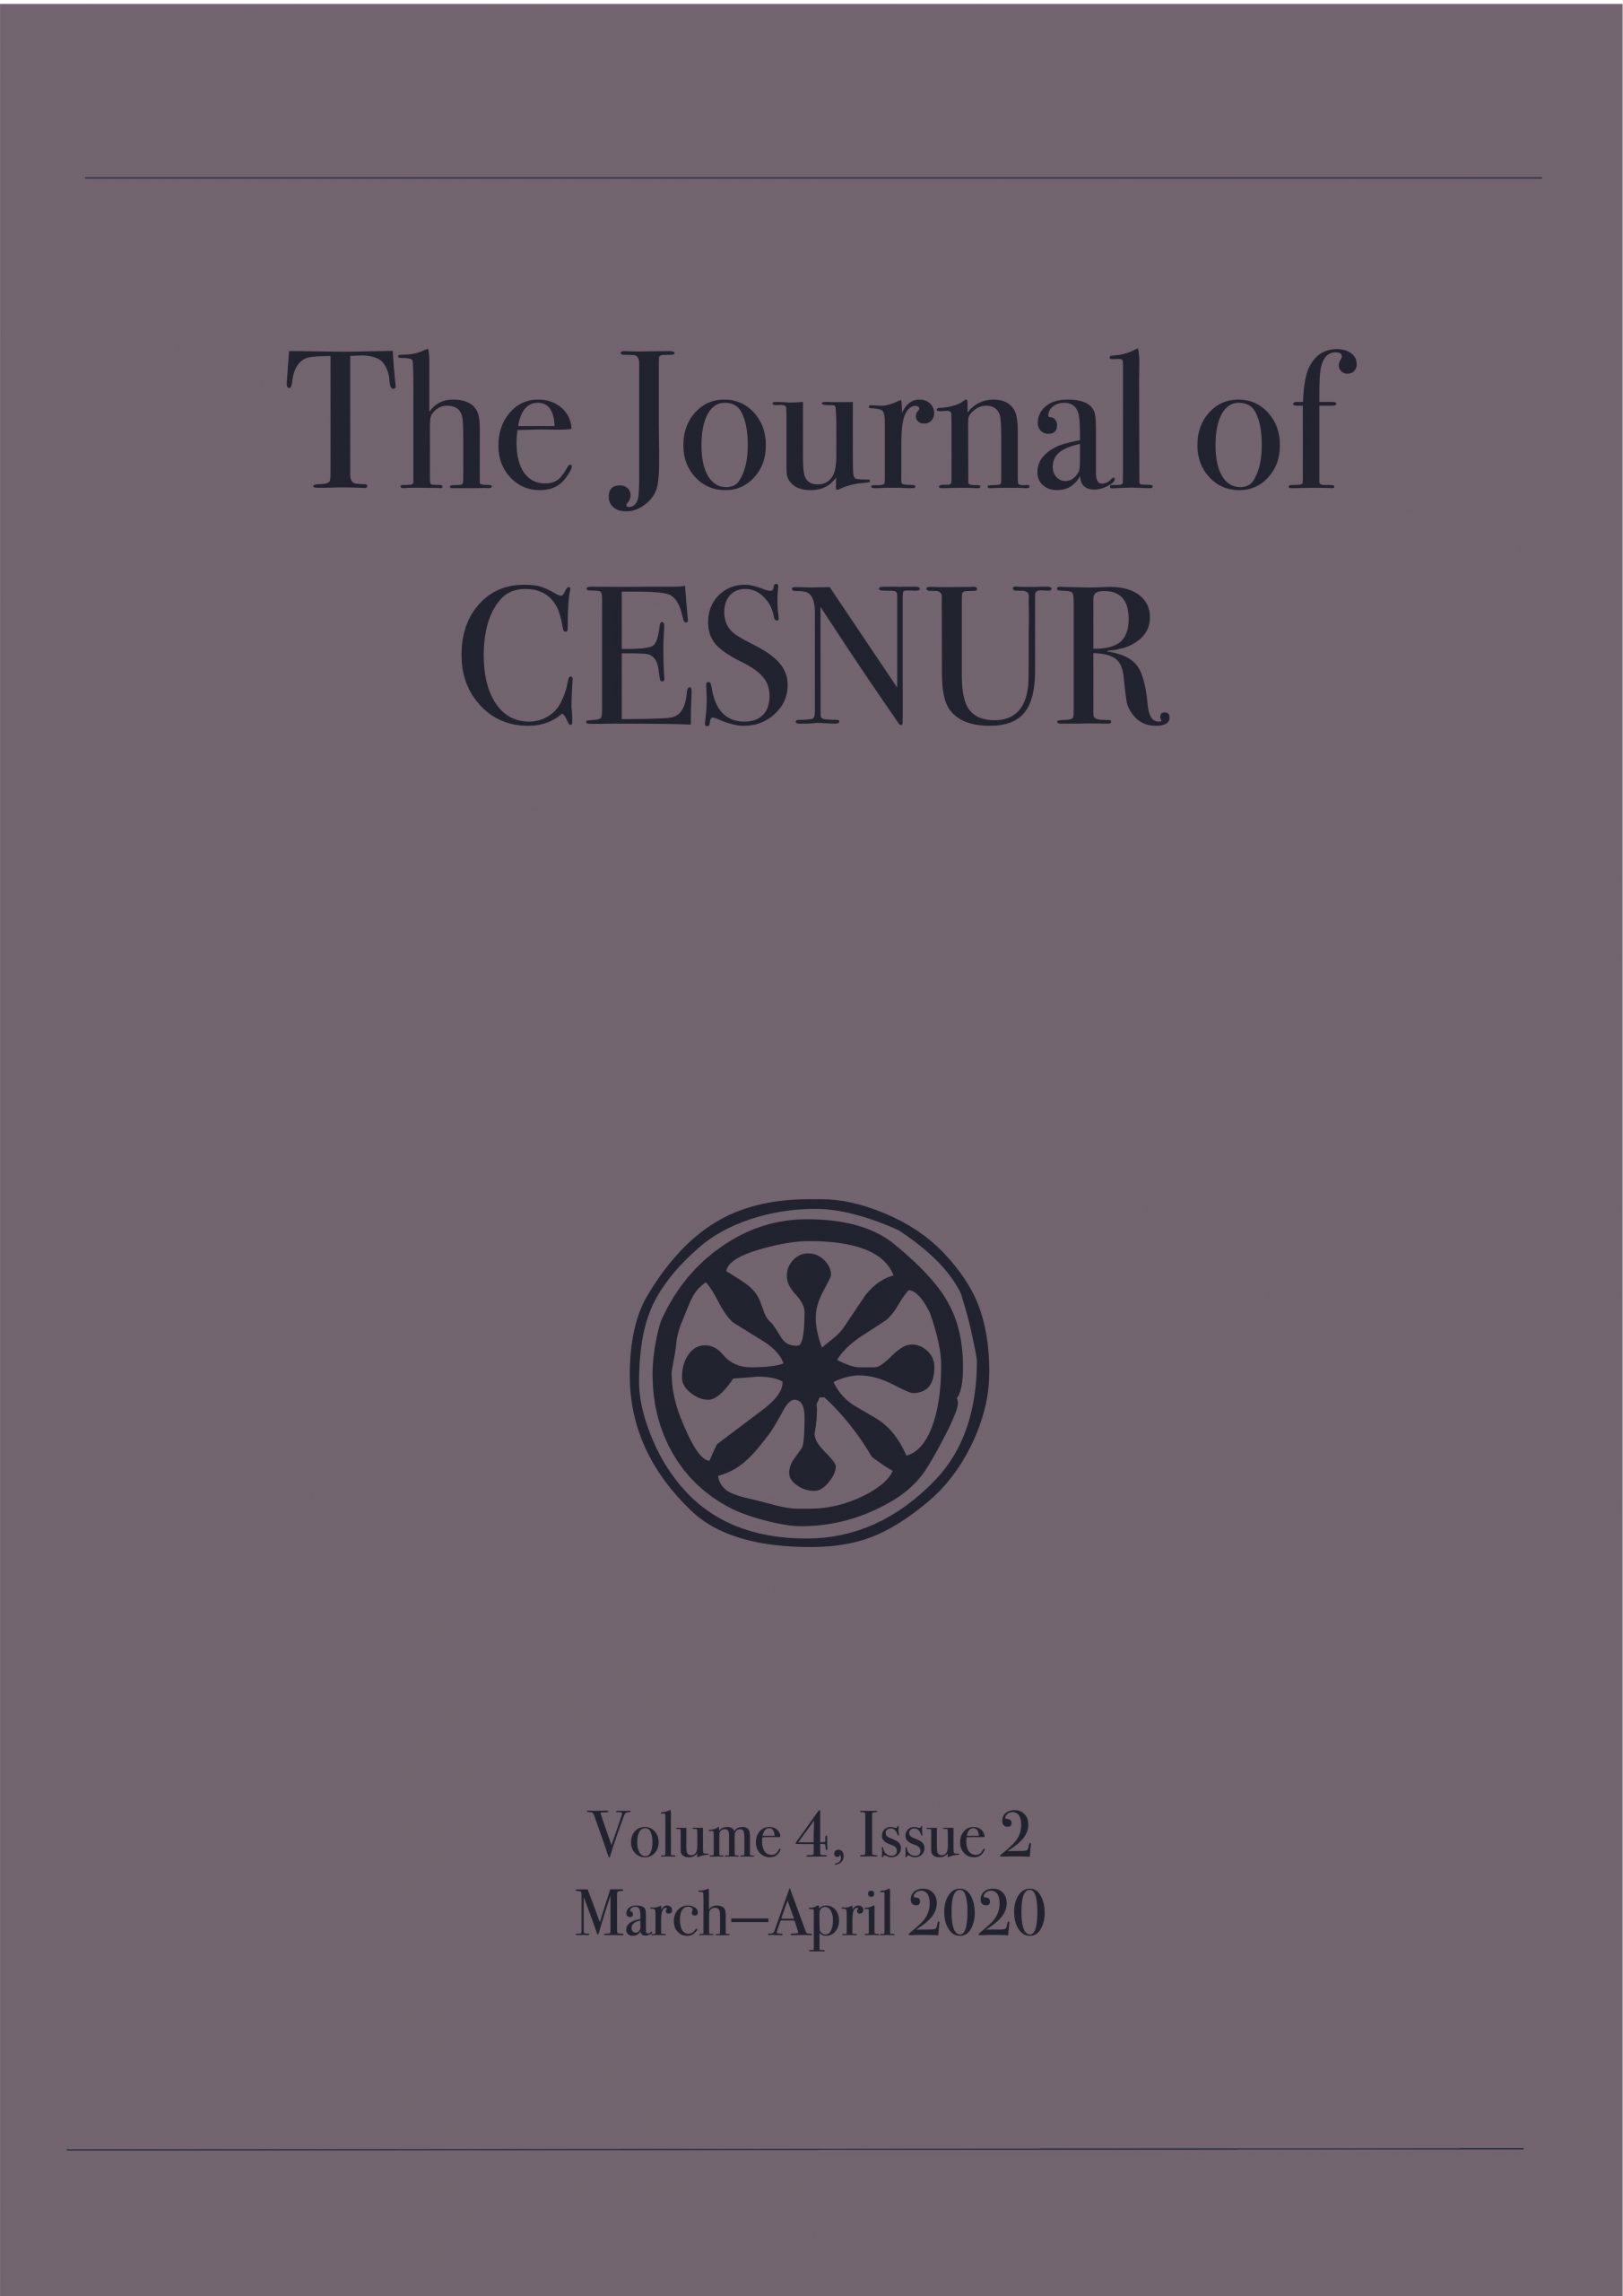 The journal of Cesnur Volume 4, Issue 2_cover